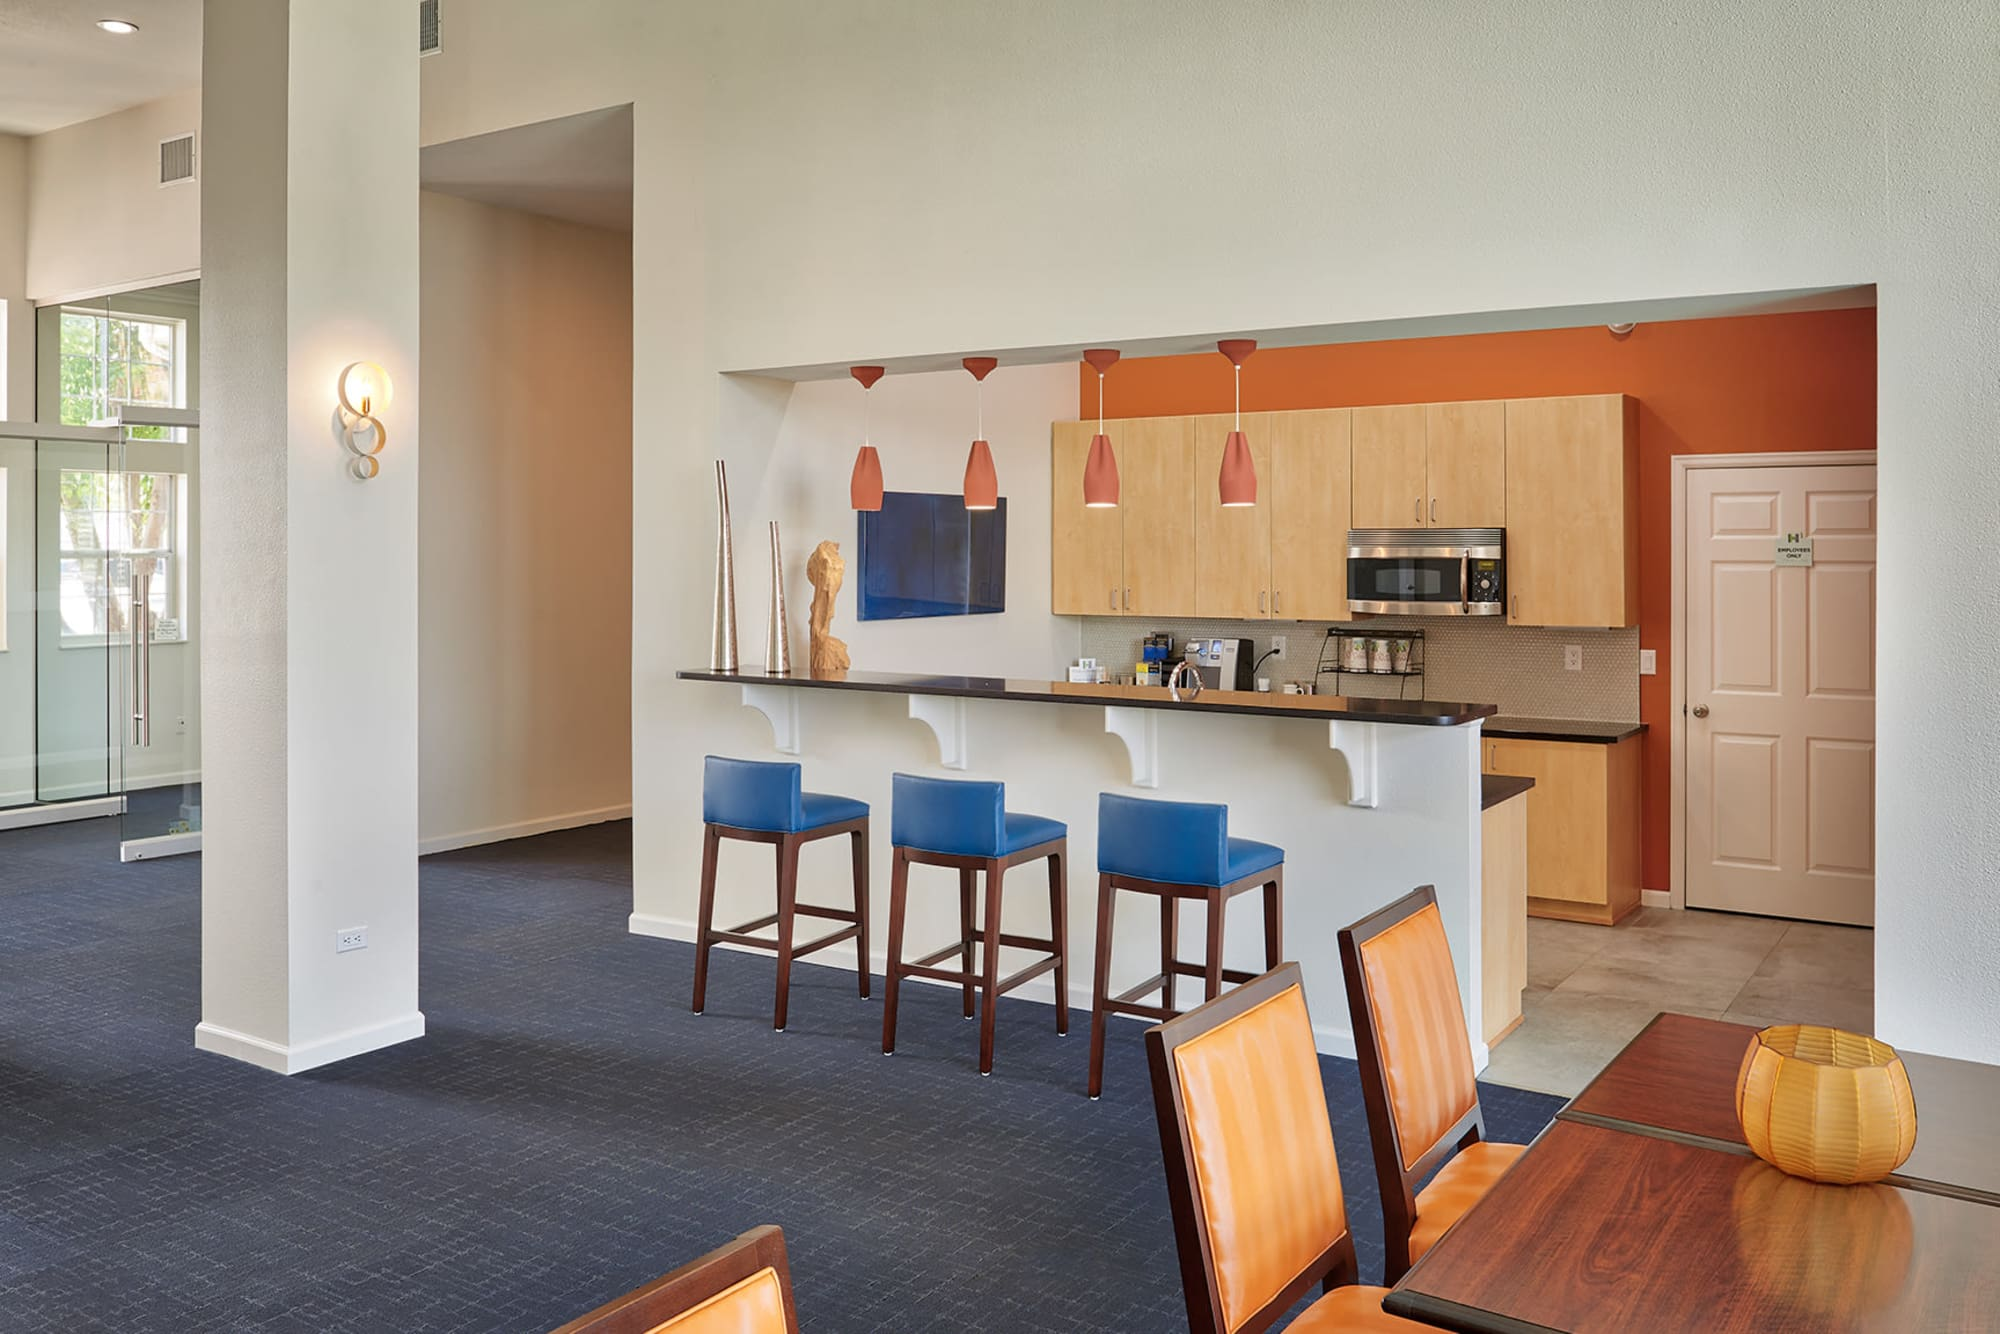 Clubhouse kitchen with bar seating at Villas at Homestead Apartments in Englewood, Colorado